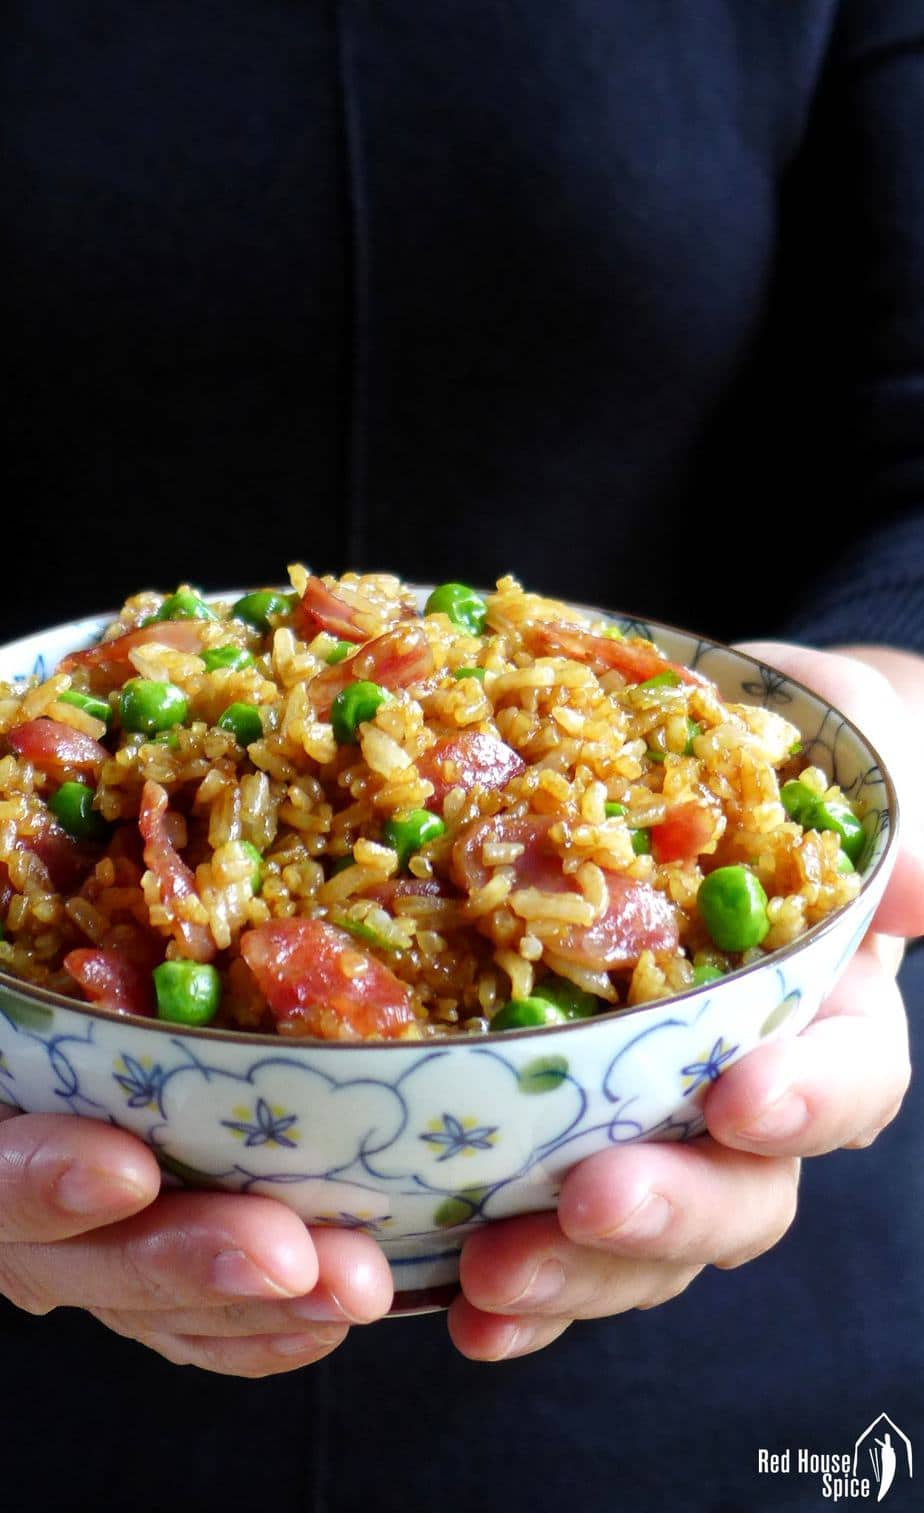 A bowl of fried rice held by hands